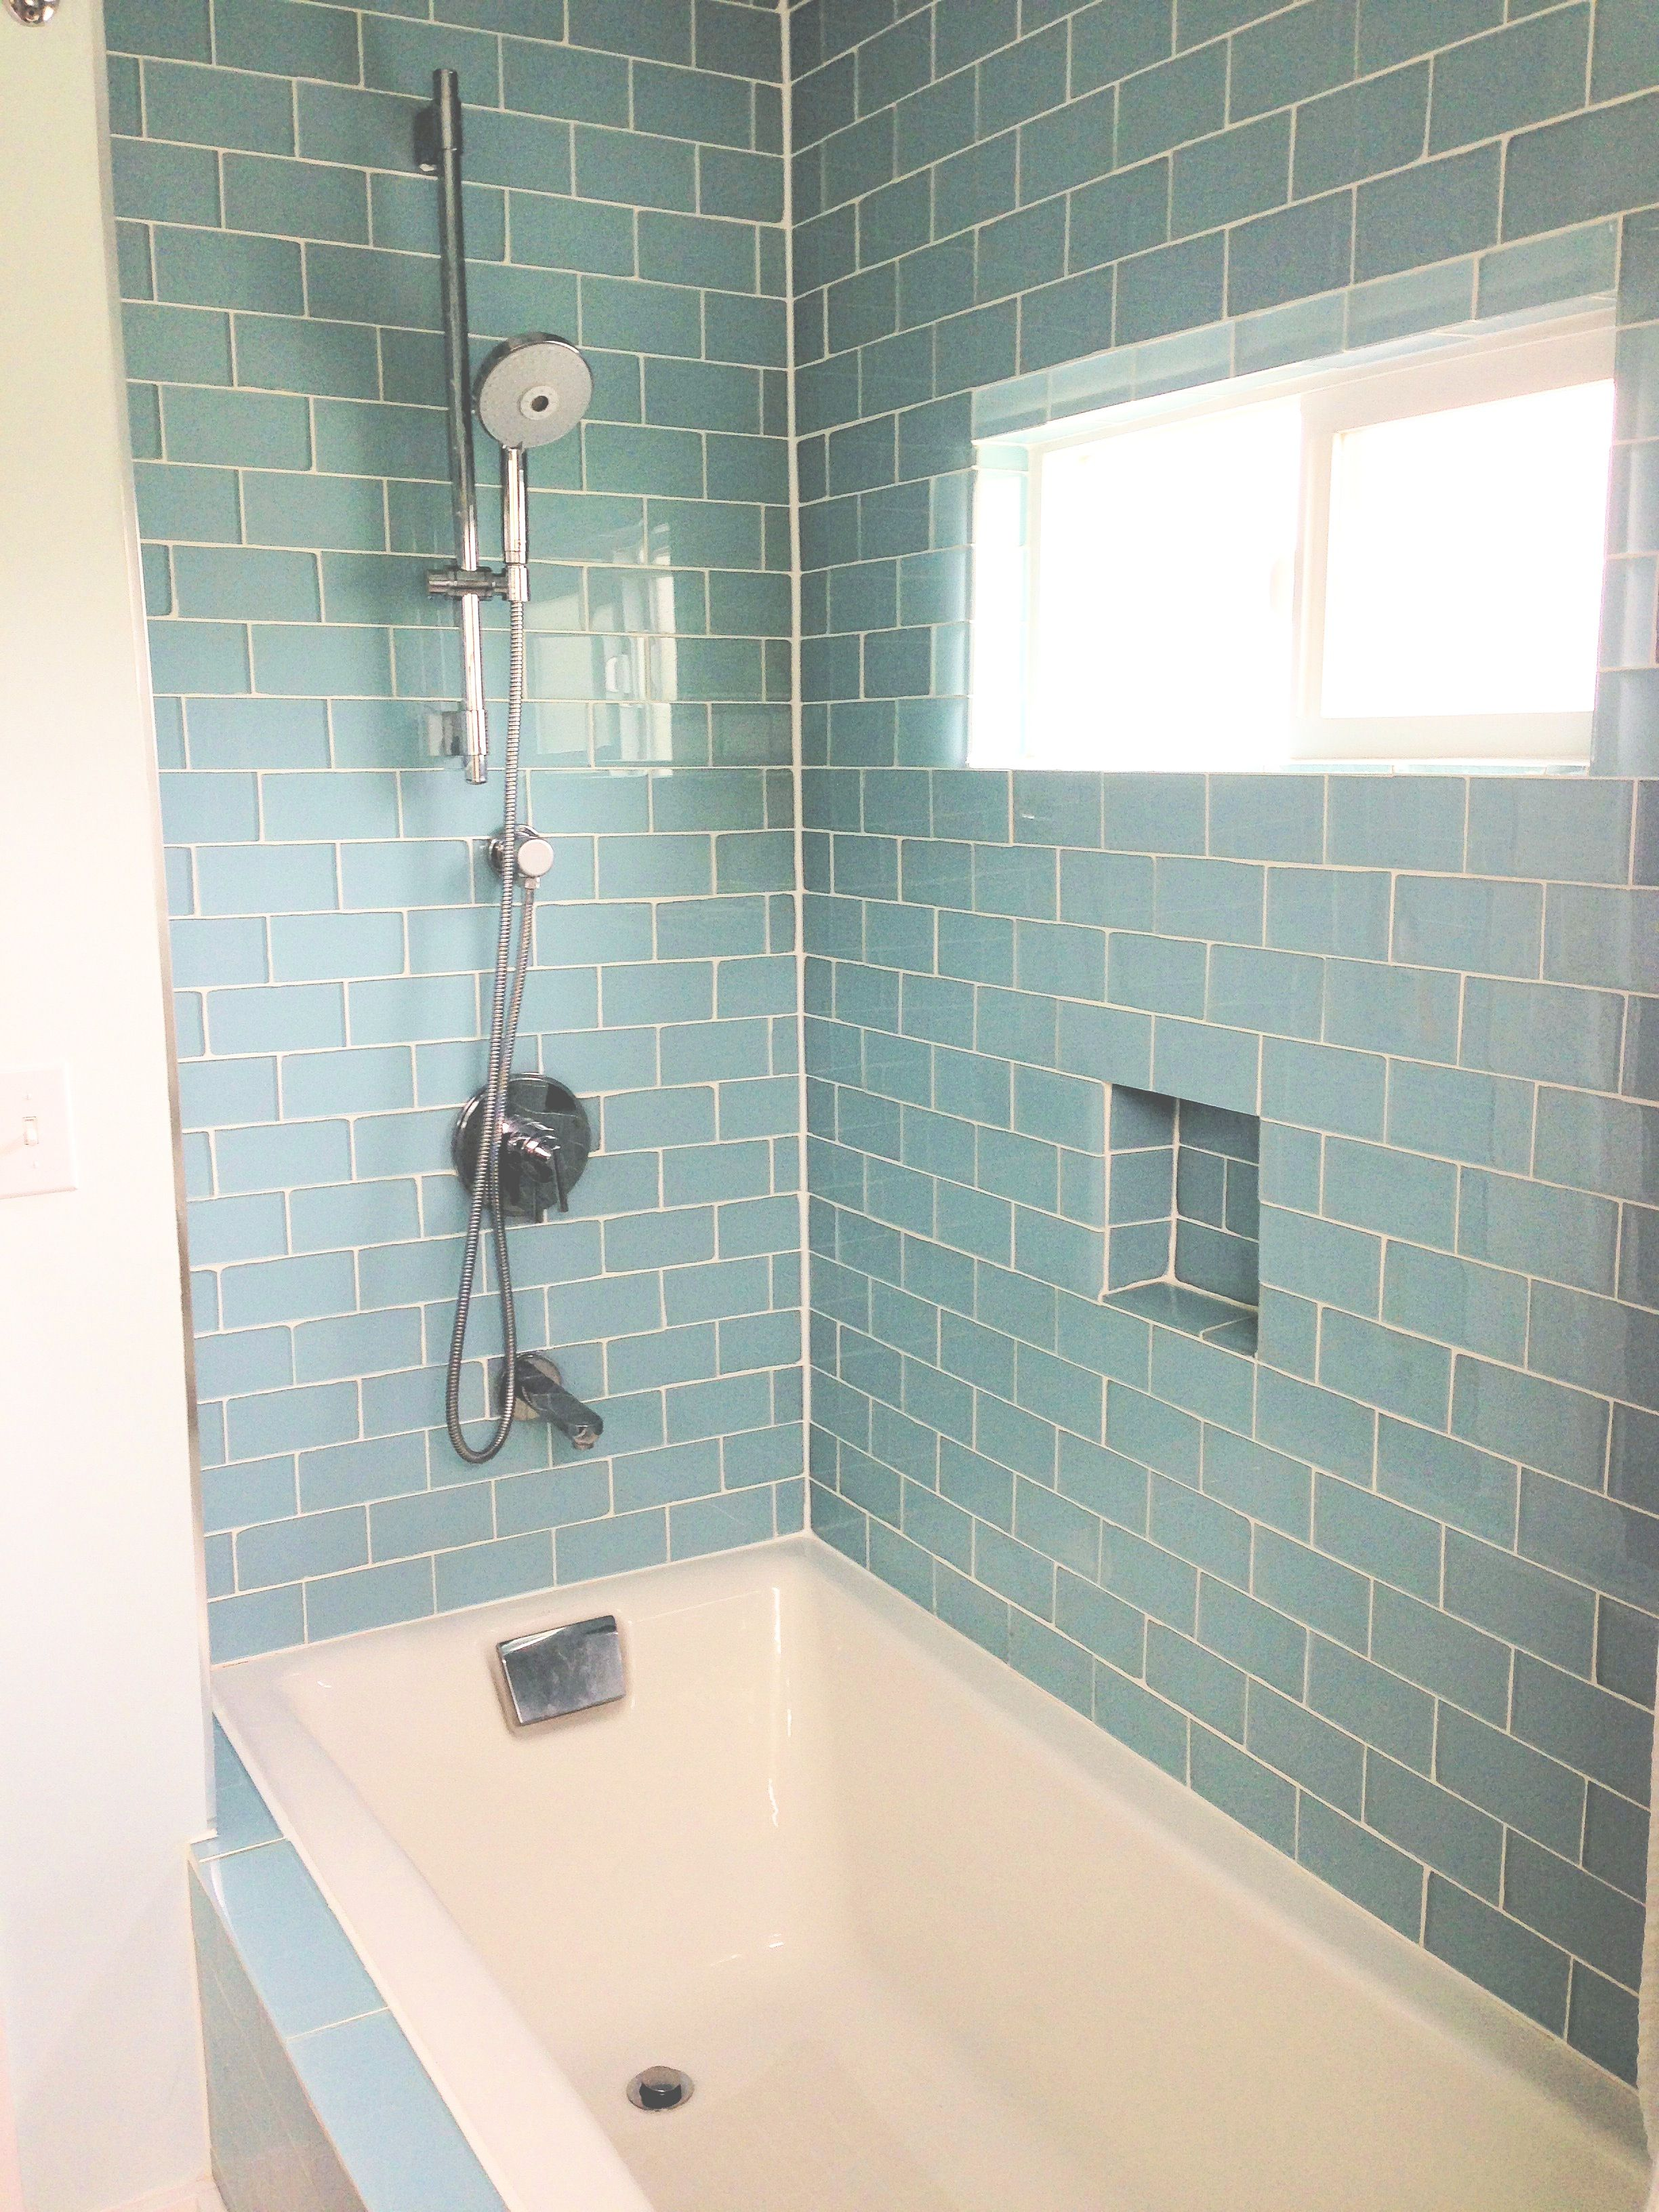 Cool baby blue tiles for an updated bathroom shower and tub ...